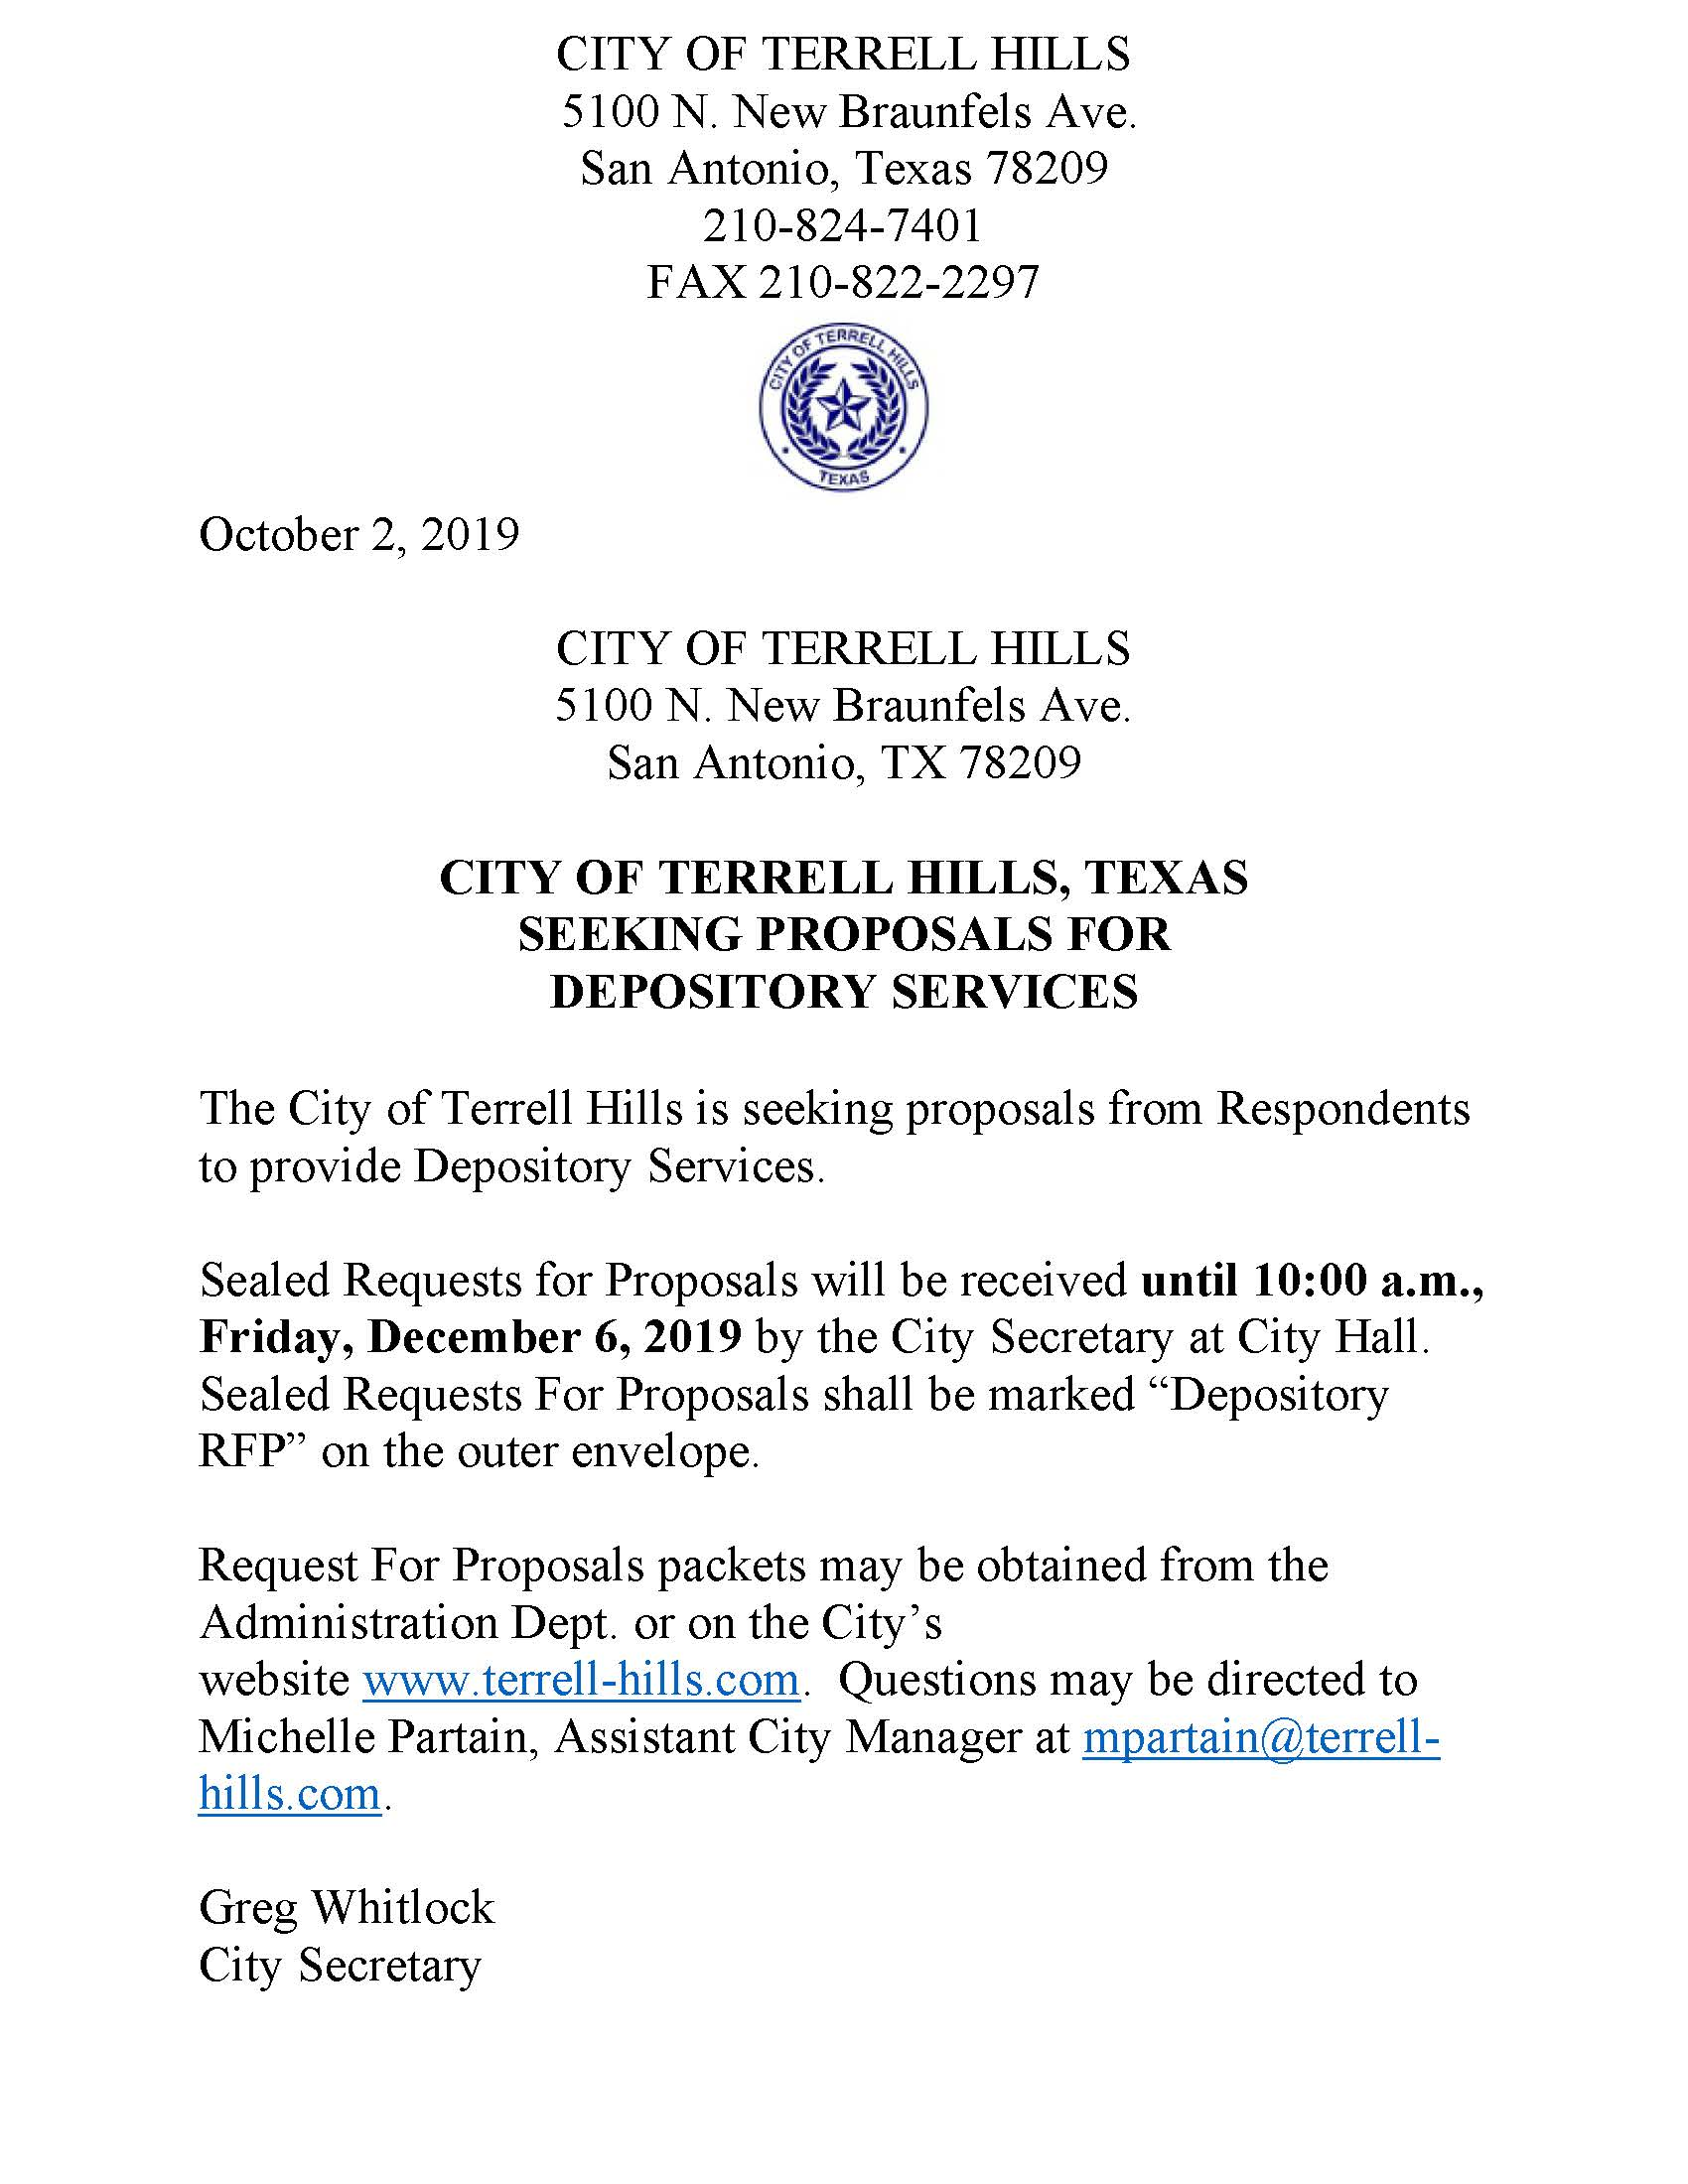 CITY OF TERRELL HILLS PROPOSAL DEPOSITORY SERVICES 19